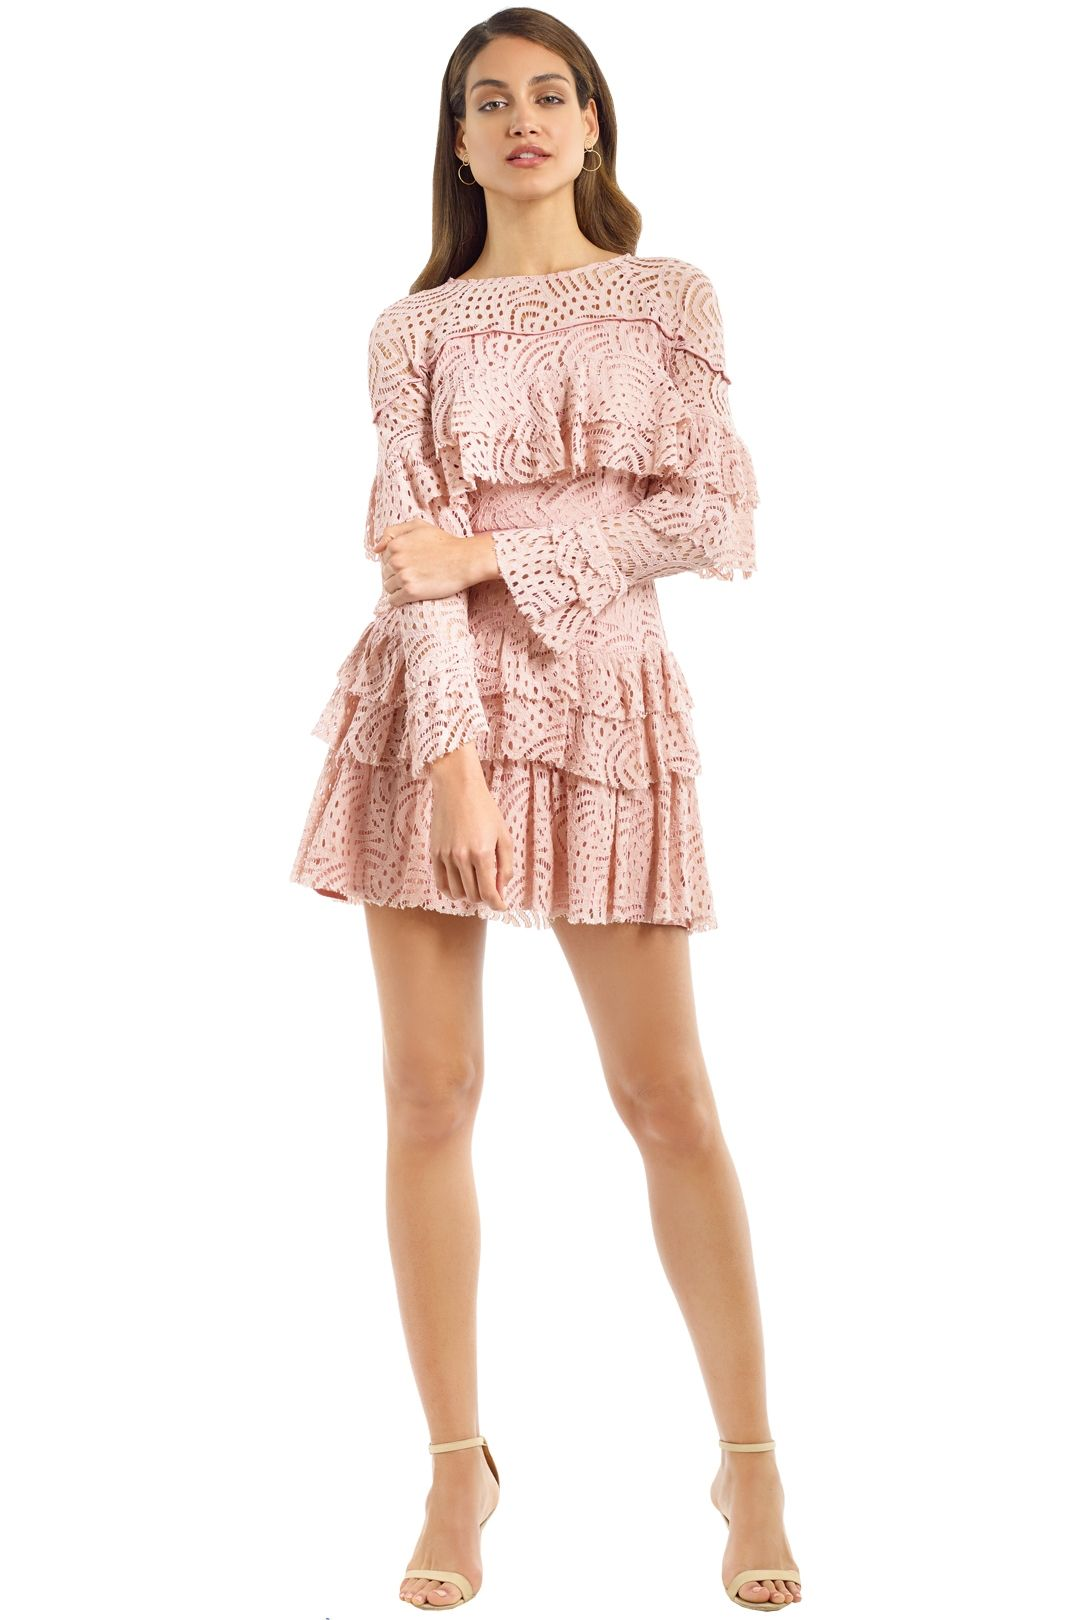 Talulah - Valencia Rose LS Mini Dress - Blush - Front